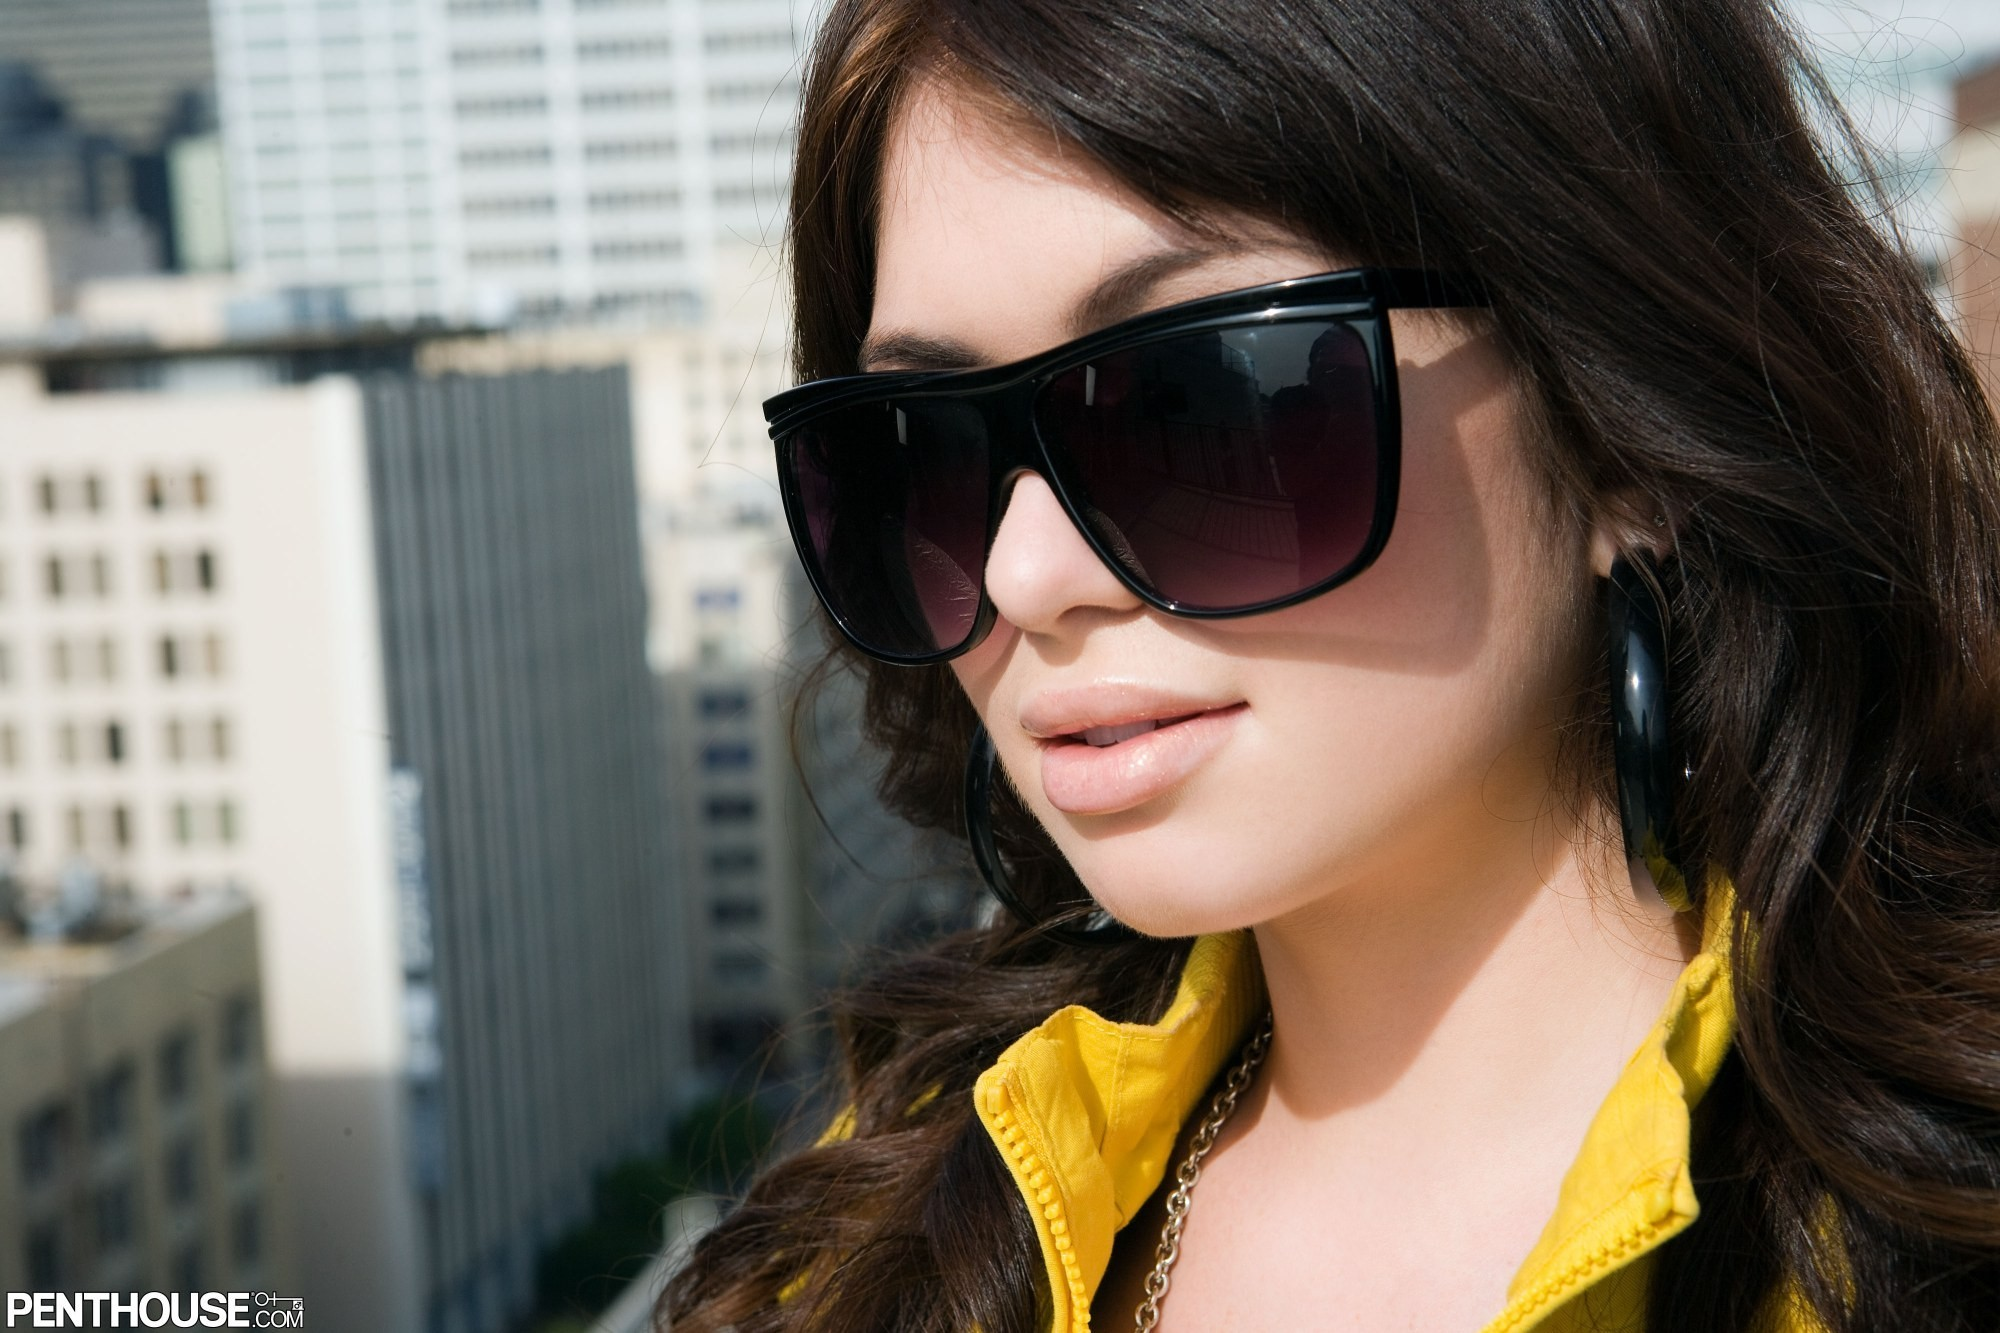 woman close-up faces sunglasses brunettes HD Wallpaper